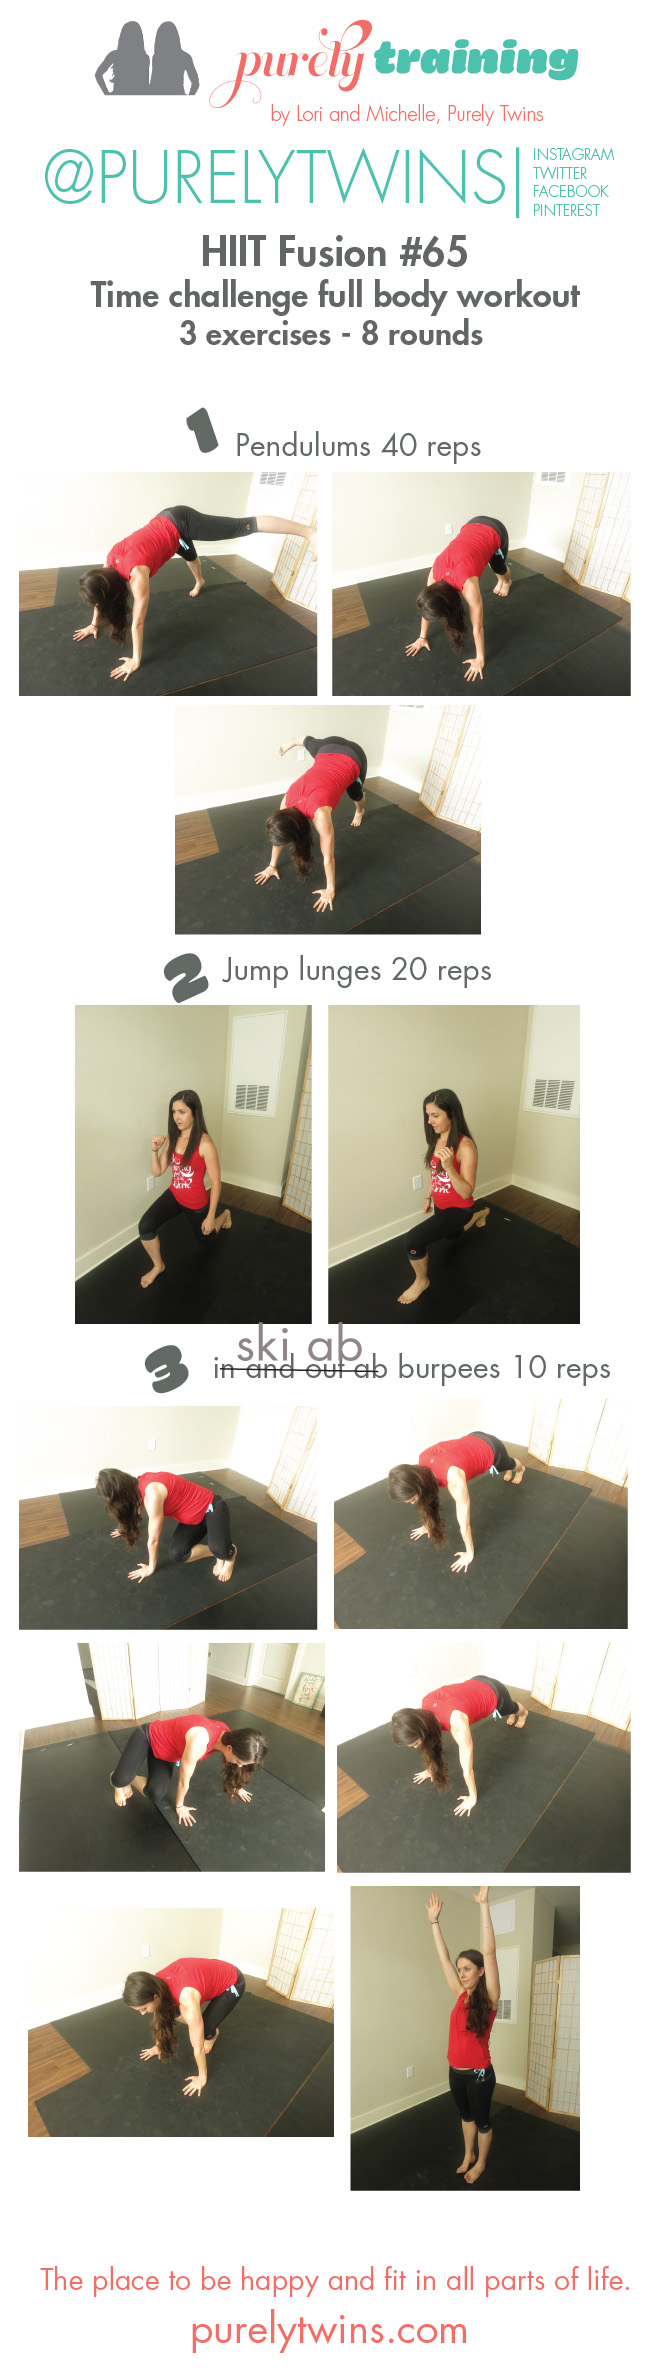 HIIT fusion time challenge bodyweight purely training 65 workout